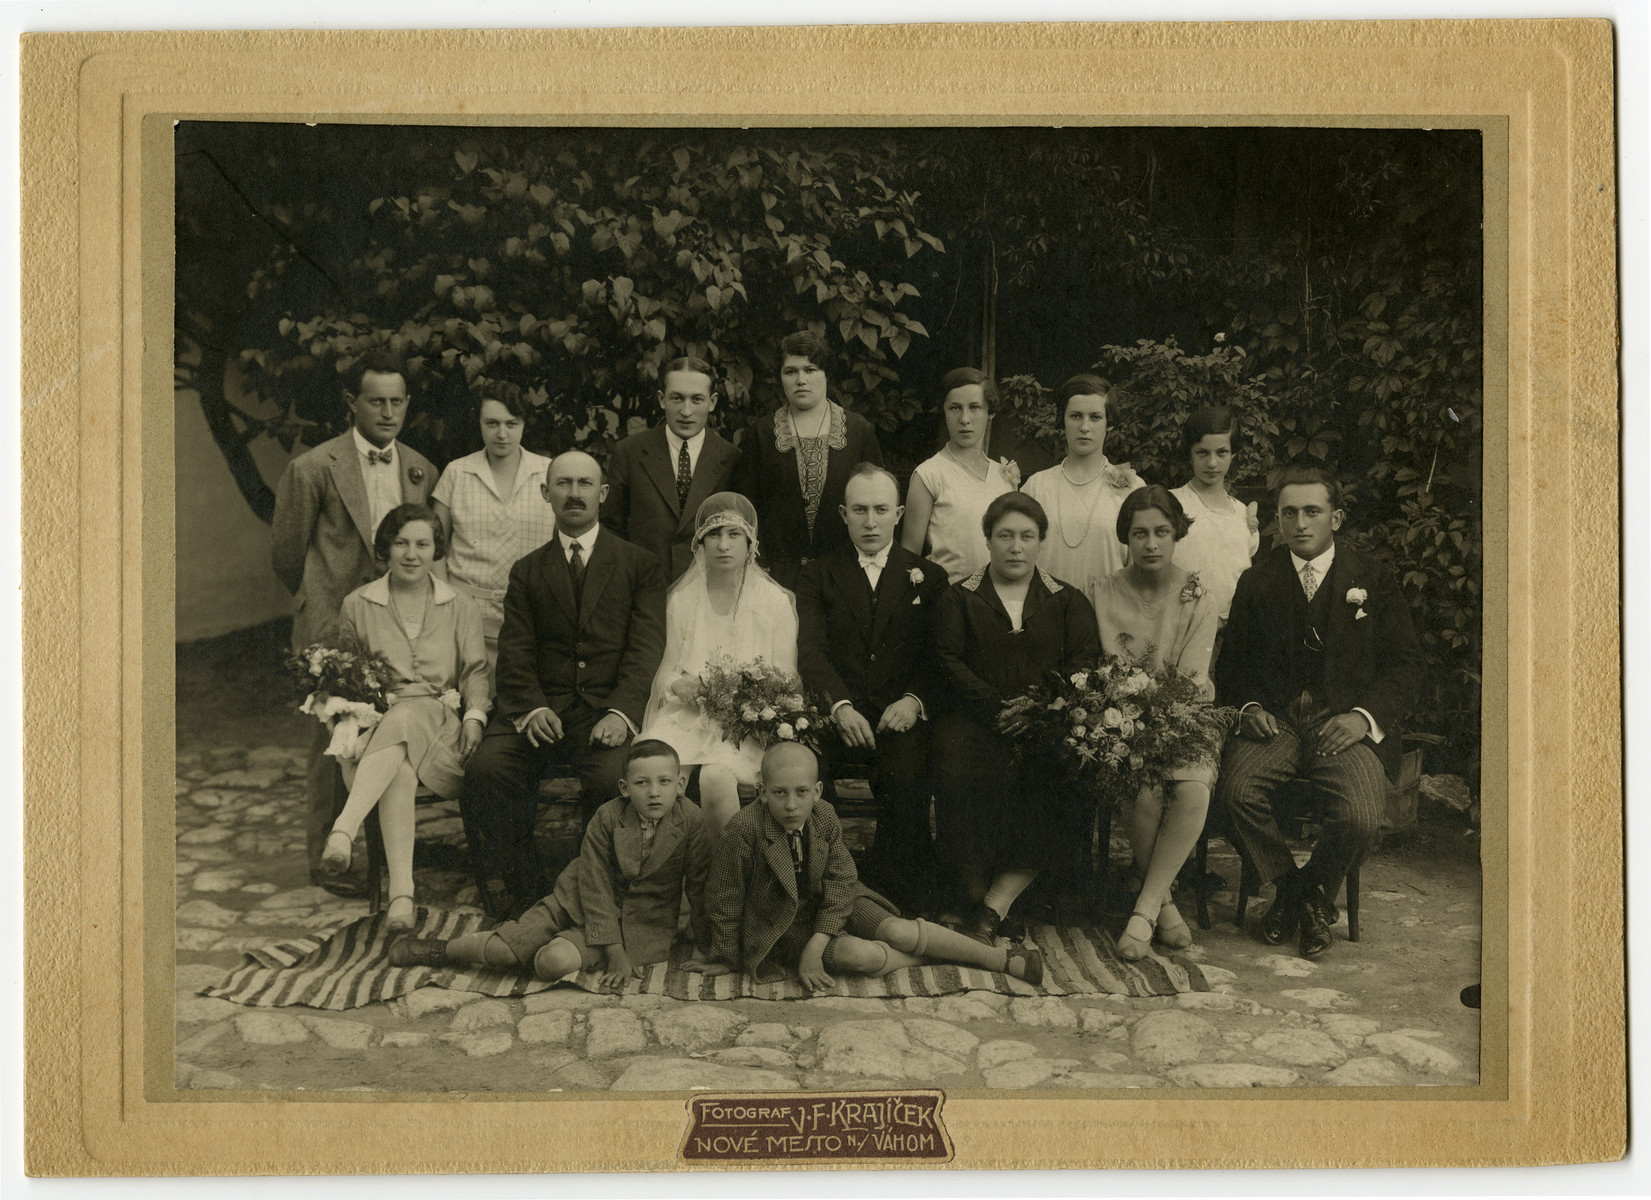 Family portrait of a Jewish wedding in Nove Mesto.  The bride and groom were both relatives of Jakob Vjecsner.  They immigrated to the United States.  Jakob and Piroska Vjecsner are pictured in the second row, second and third from the left.